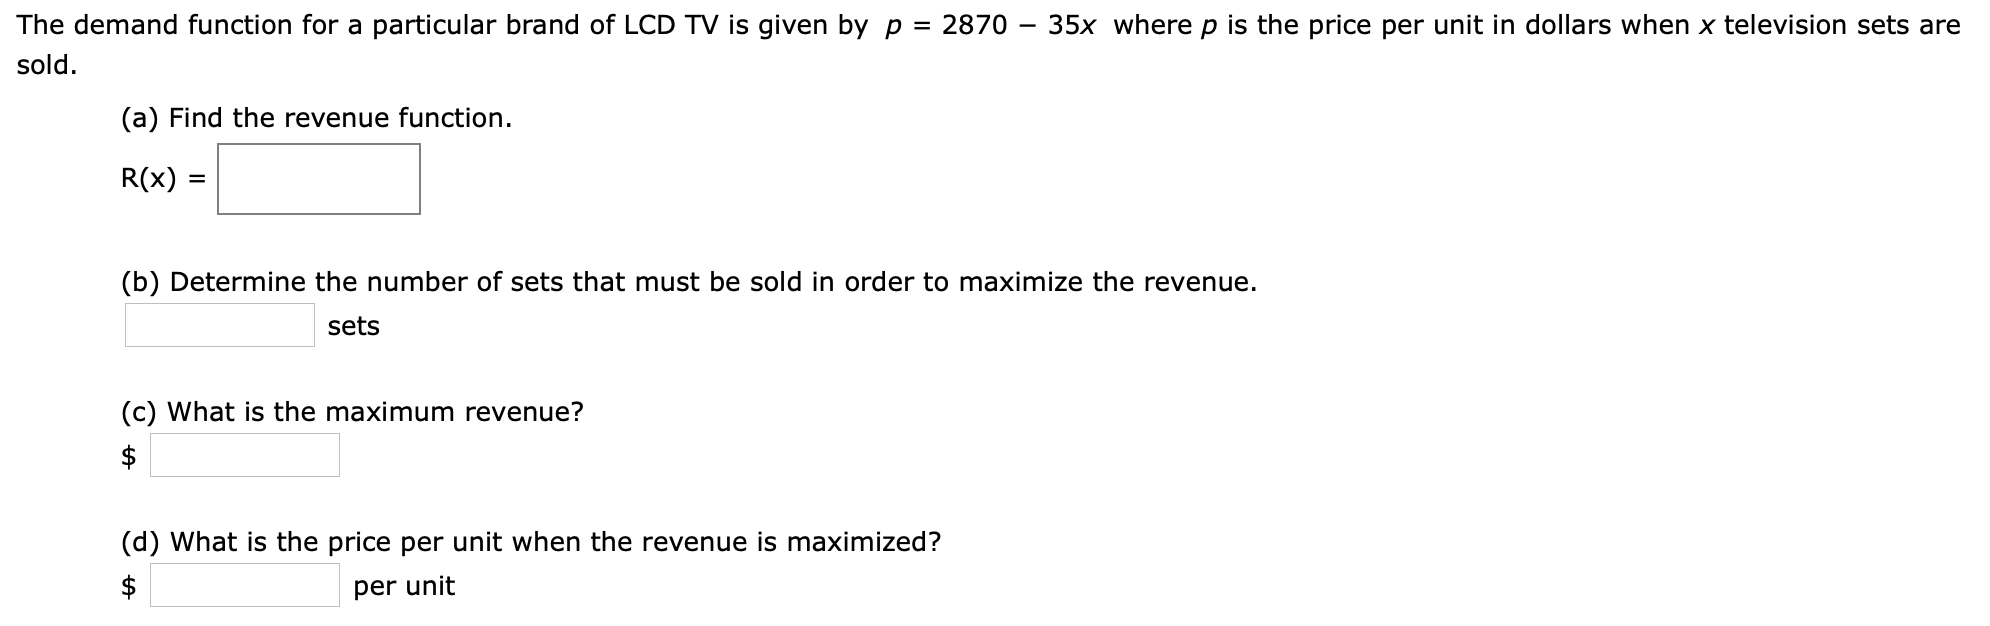 The demand function for a particular brand of LCD TV is given by p = 2870 - 35x where p is the price per unit in dollars when x television sets are sold (a) Find the revenue function. R(x) (b) Determine the number of sets that must be sold in order to maximize the revenue sets (c) What is the maximum revenue? $ (d) What is the price per unit when the revenue is maximized? $ per unit